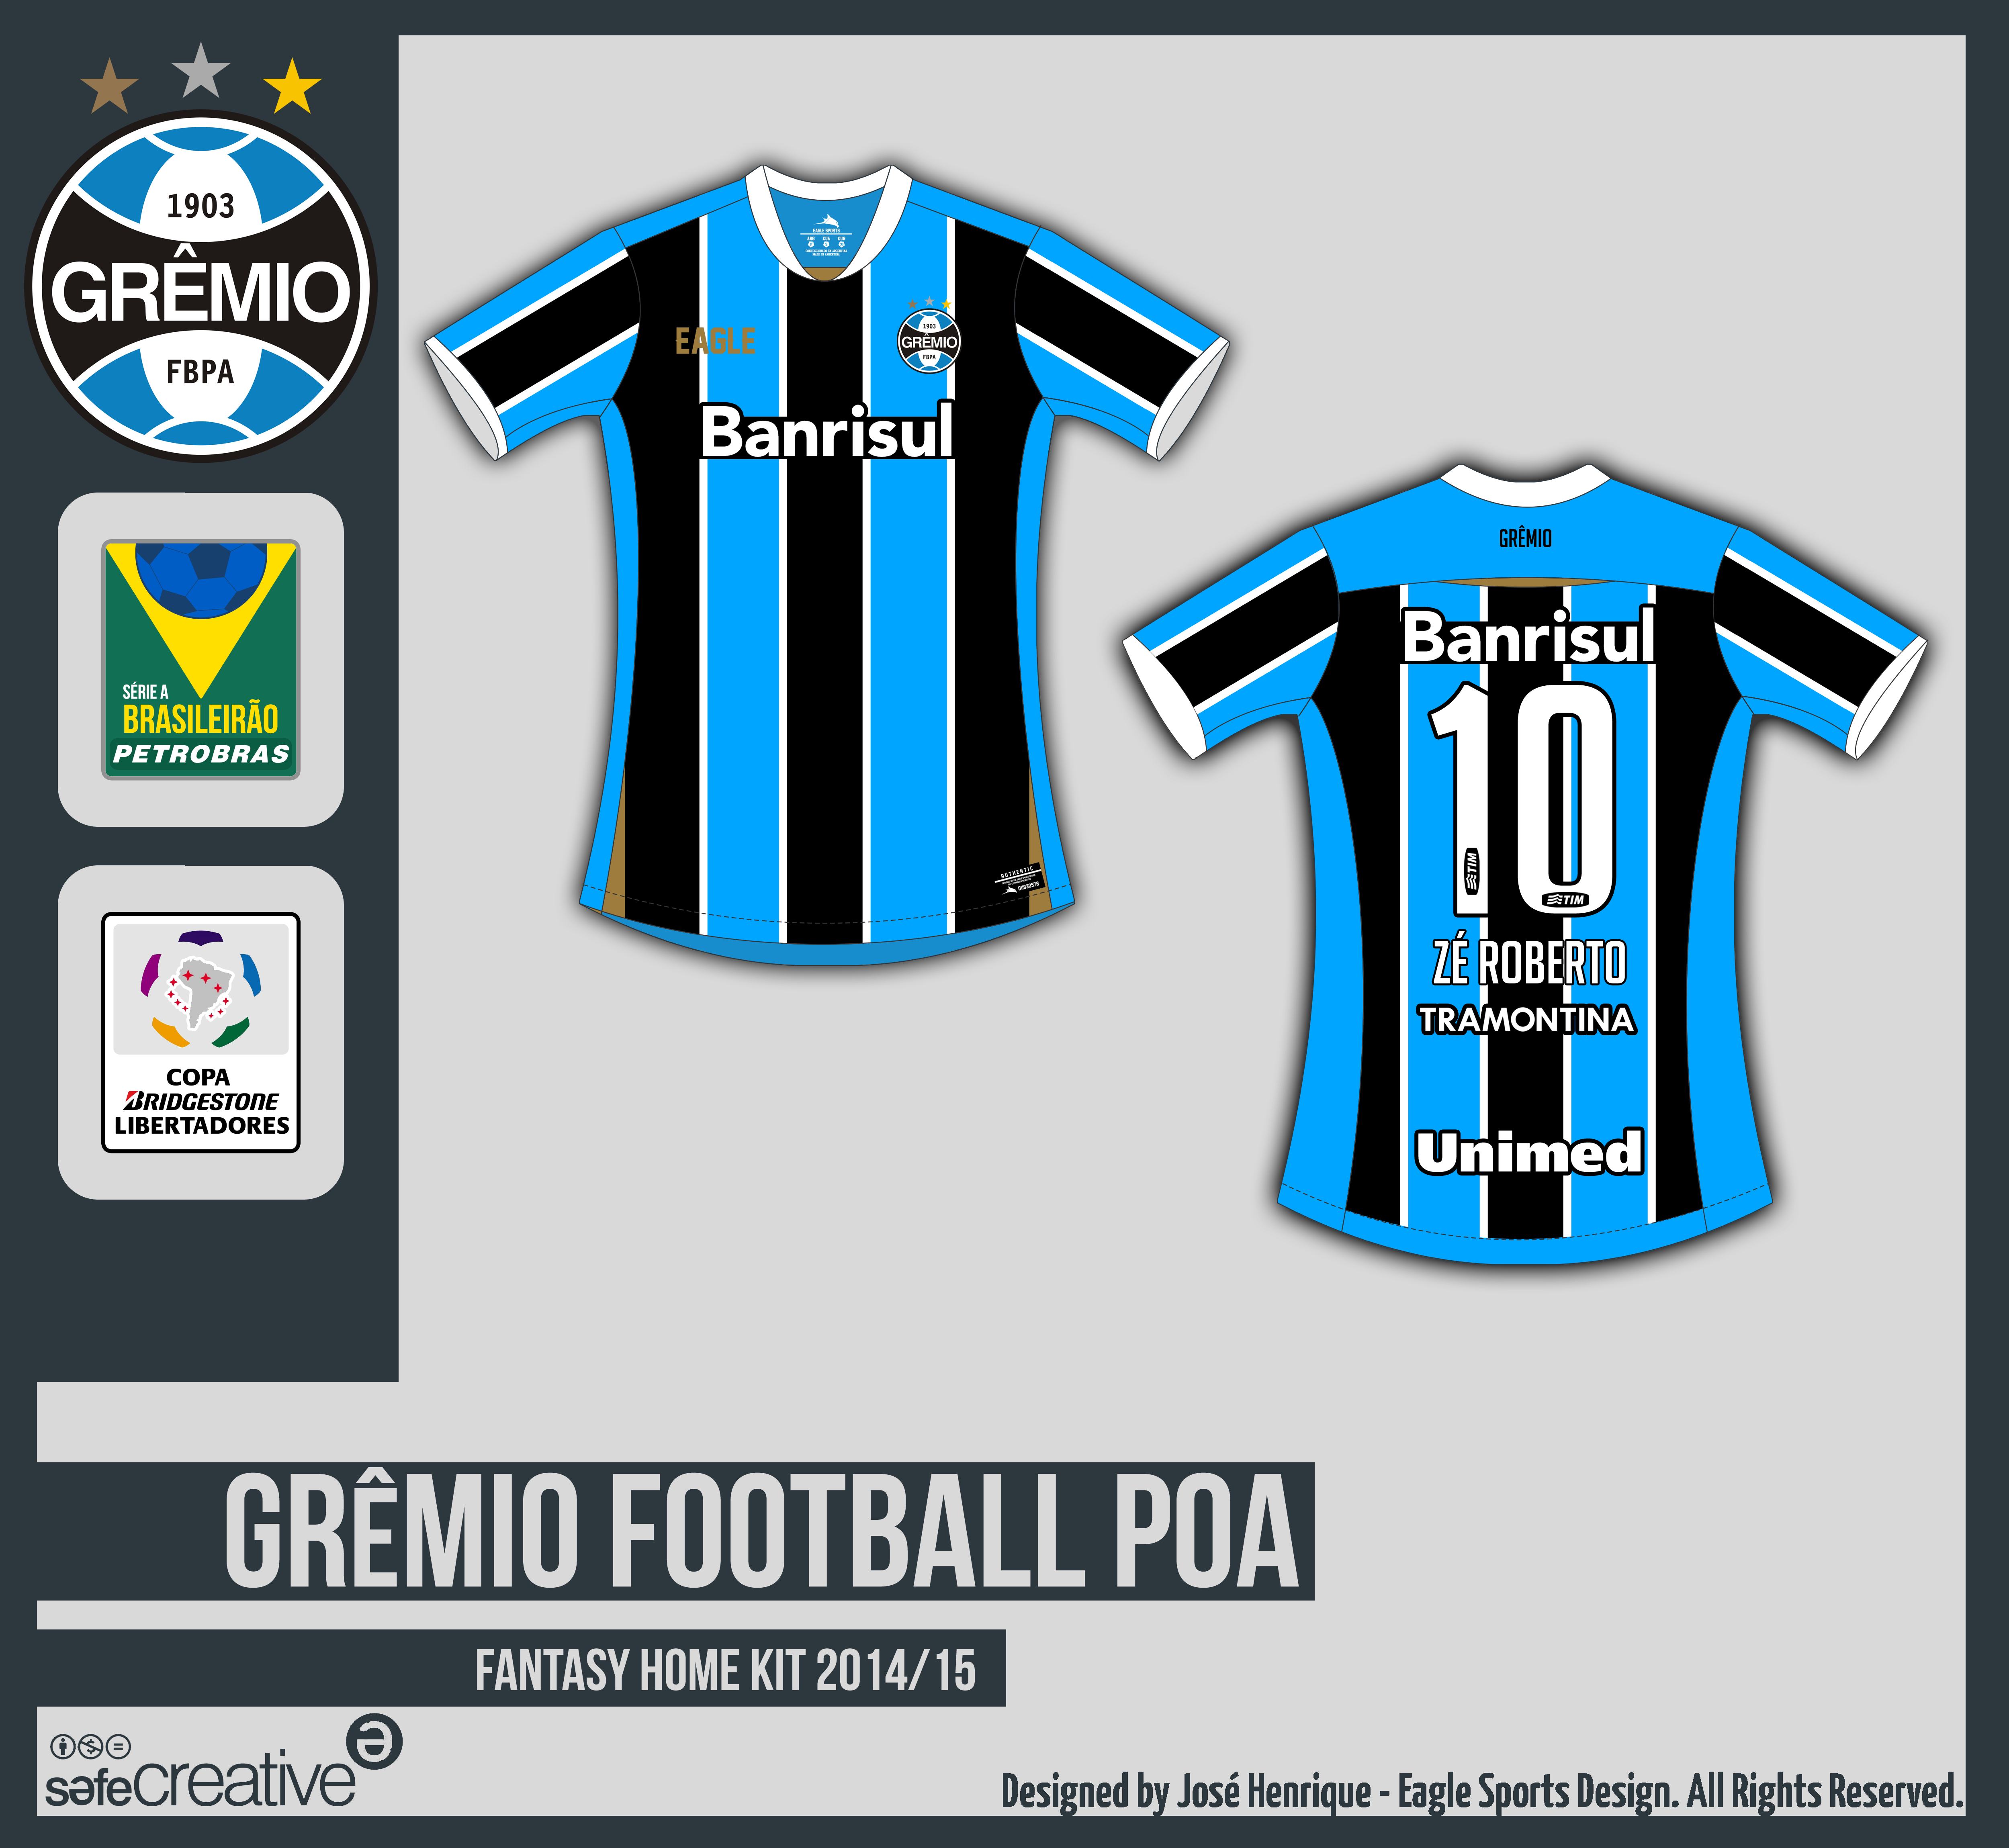 http://fc07.deviantart.net/fs70/f/2013/152/5/0/gremio_home_eagle_by_eaglesports-d67fbs8.png